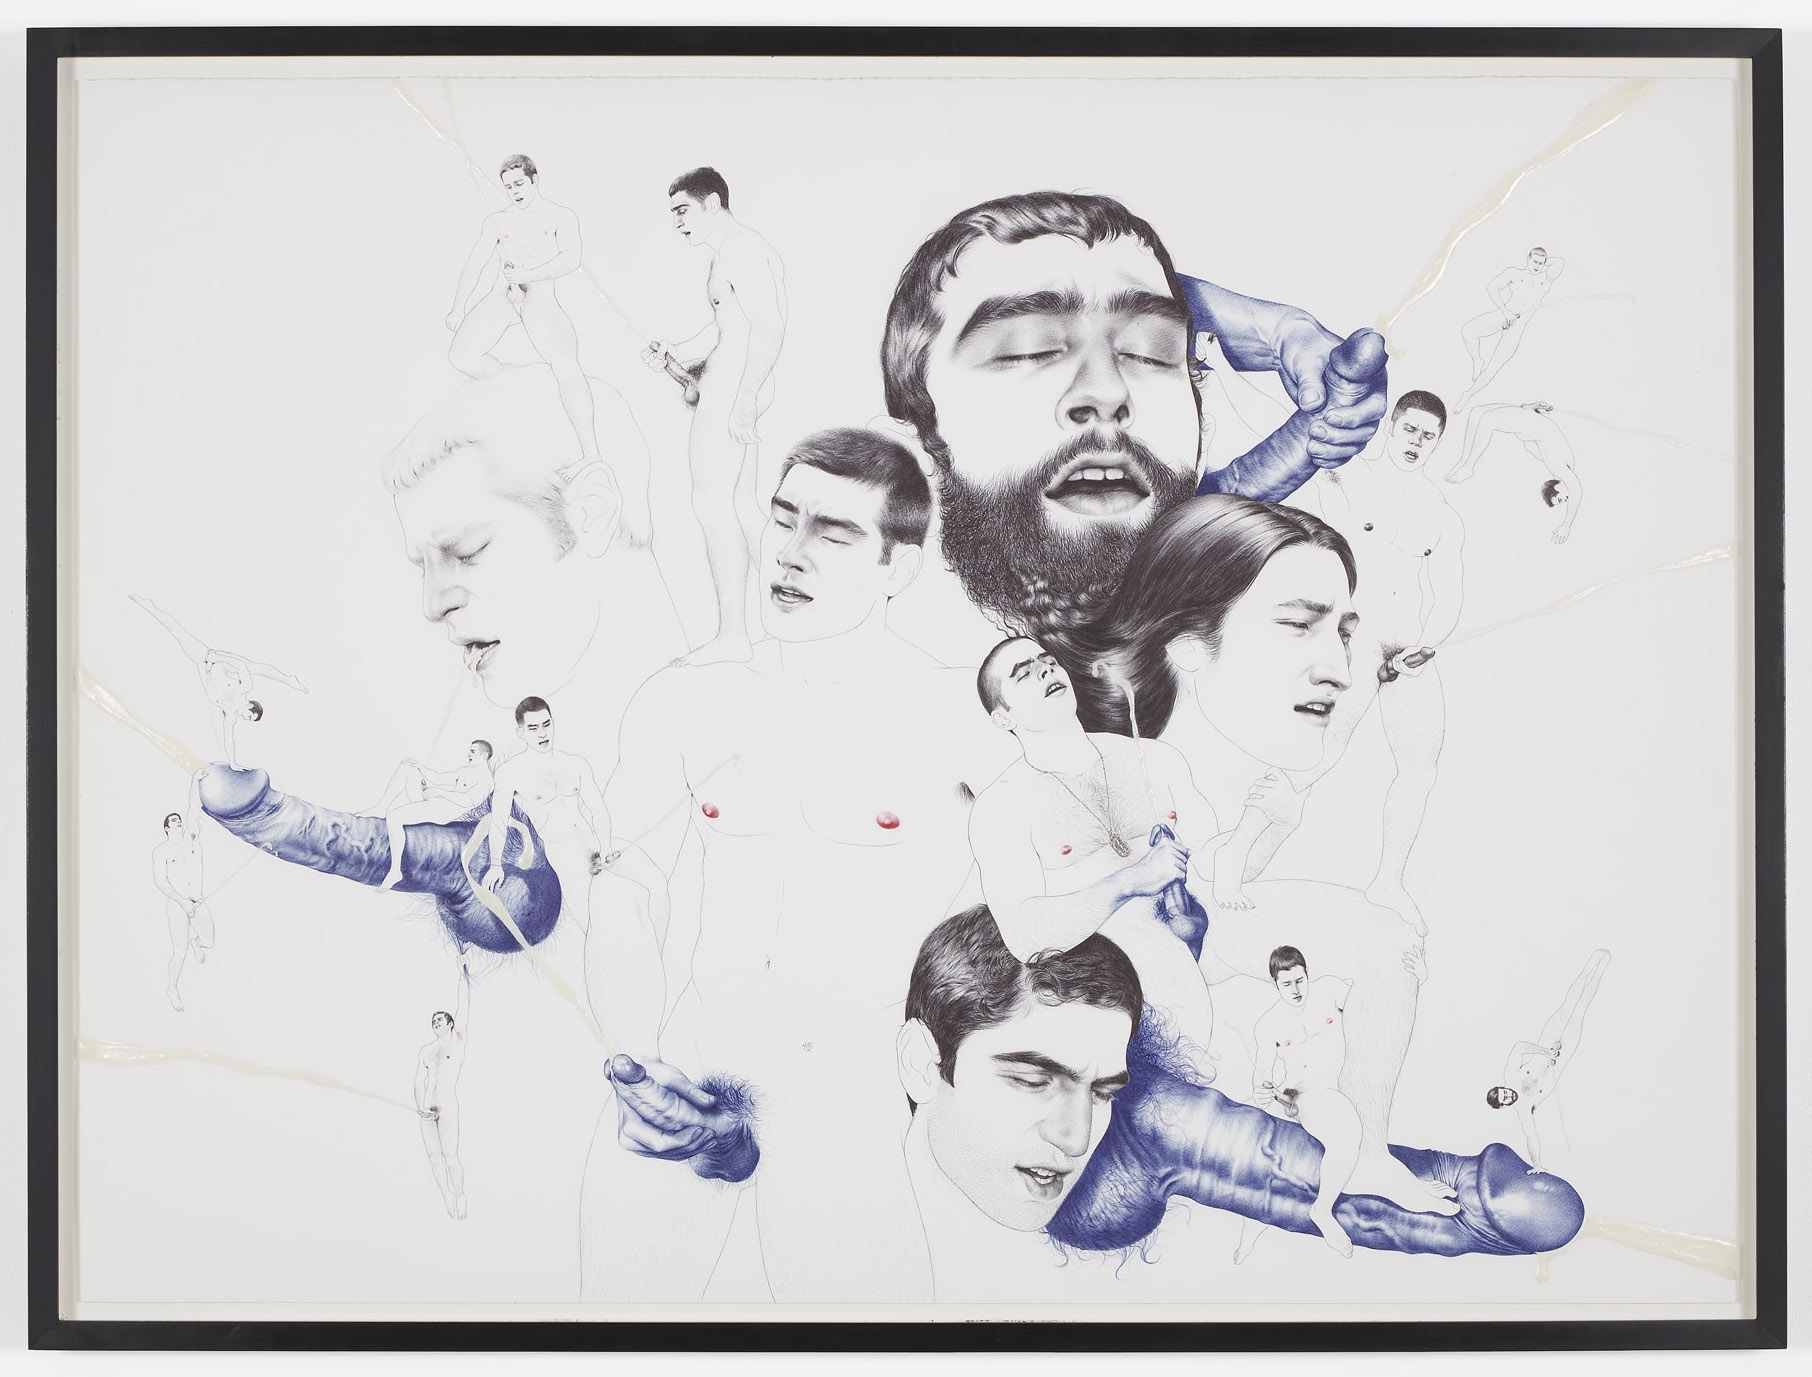 Sticky Subject  2013  Ink and glue on paper  89 x 121 cm / 35 x 47.6 in